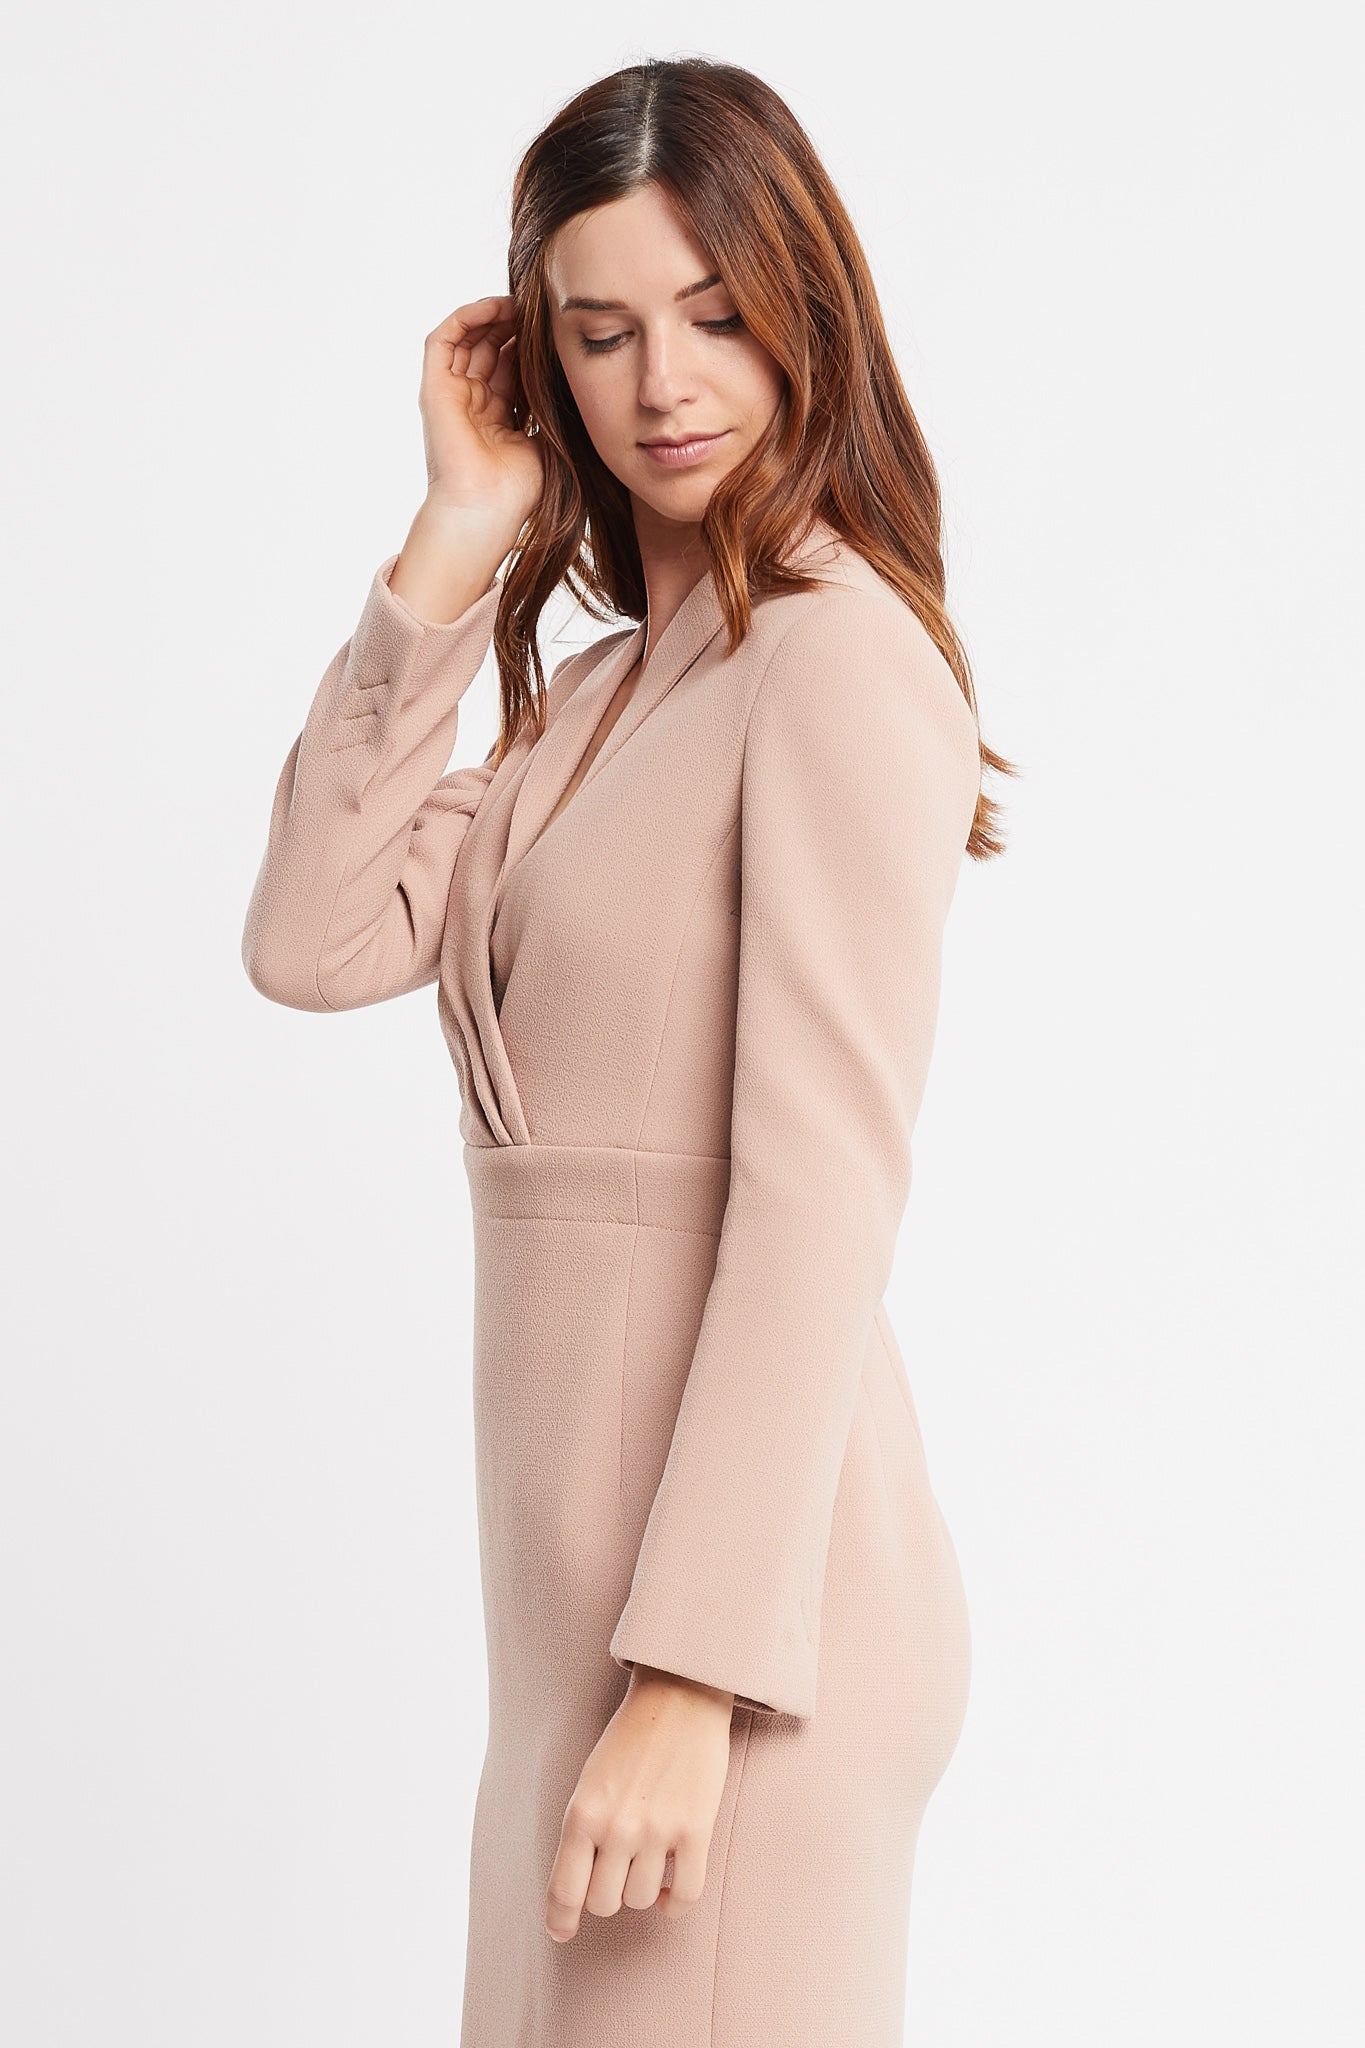 Sandra Long Sleeve Sheath Beige Work and Cocktail Dress